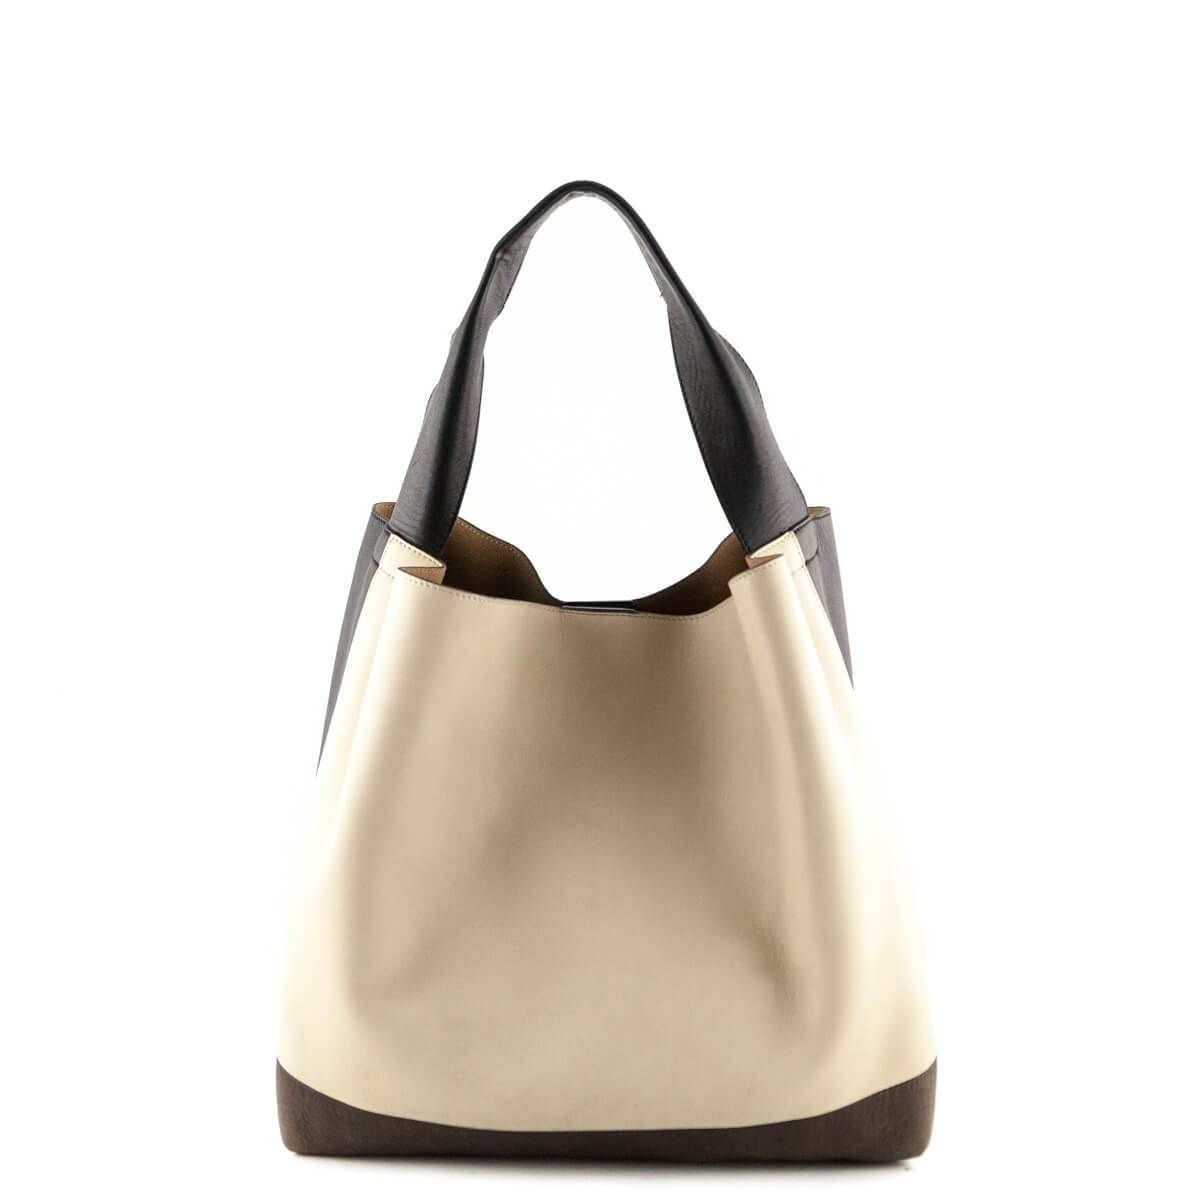 Marni Color Block Lambskin Leather Tote - LOVE that BAG - Preowned  Authentic Designer Handbags 70daac241fd6d